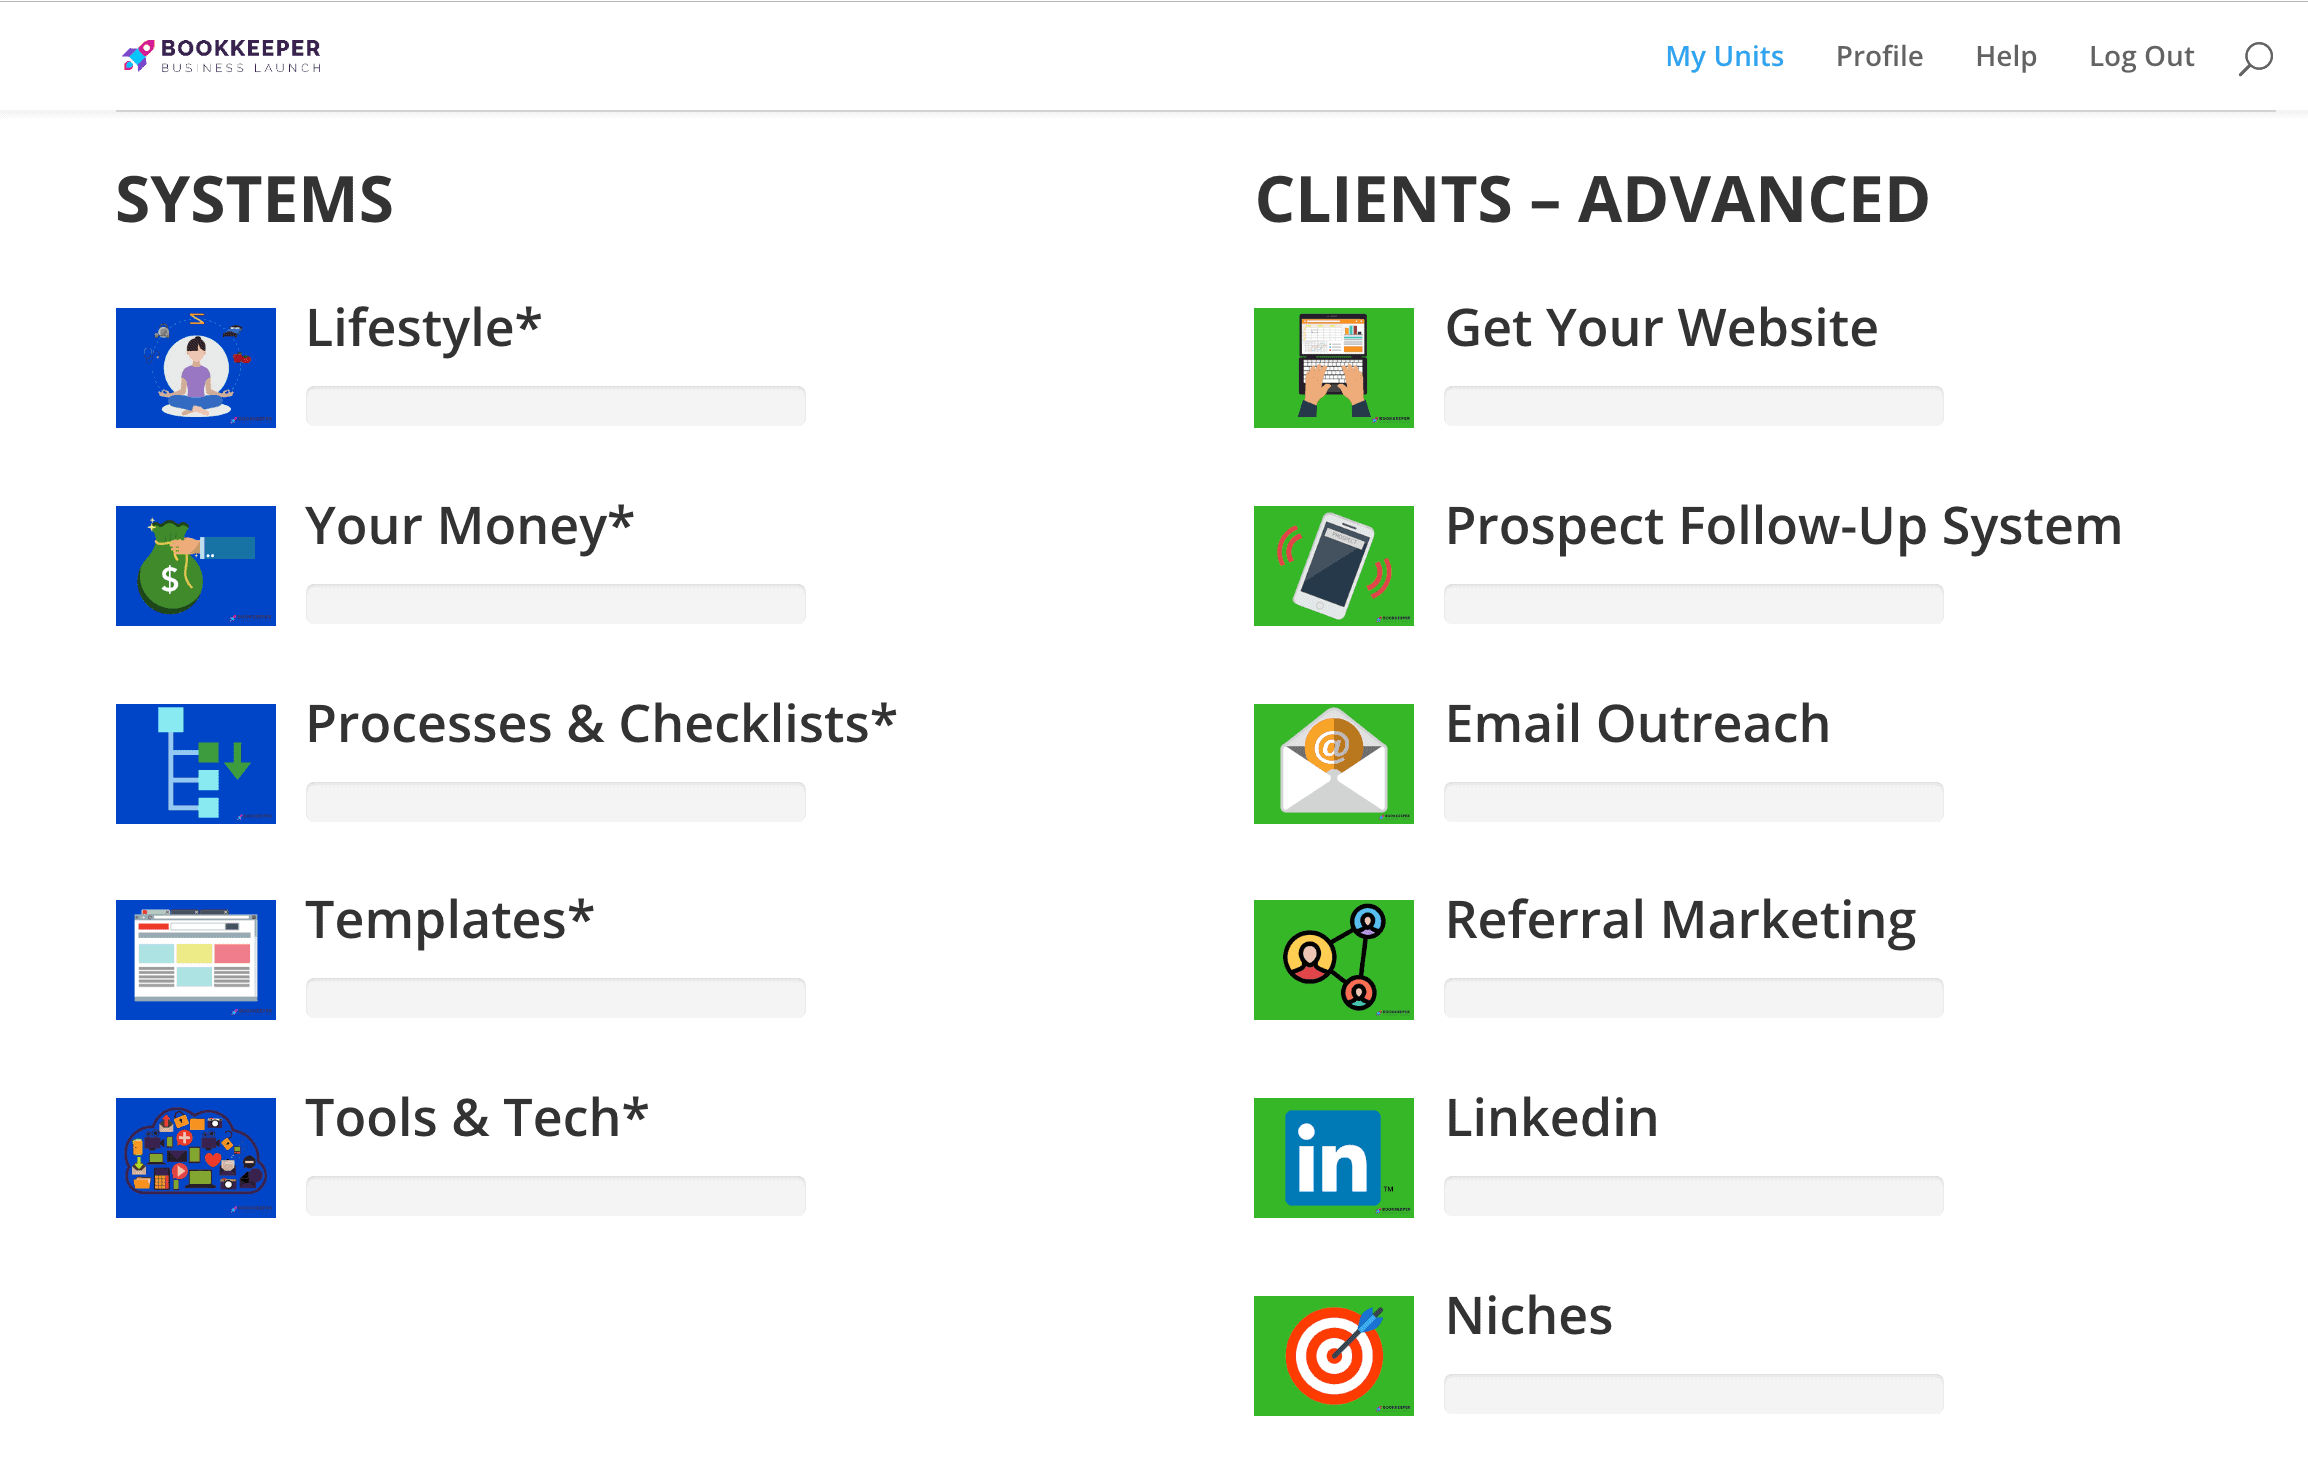 Screenshot of Bookkeeper Business Launch Systems and Clients-Advanced